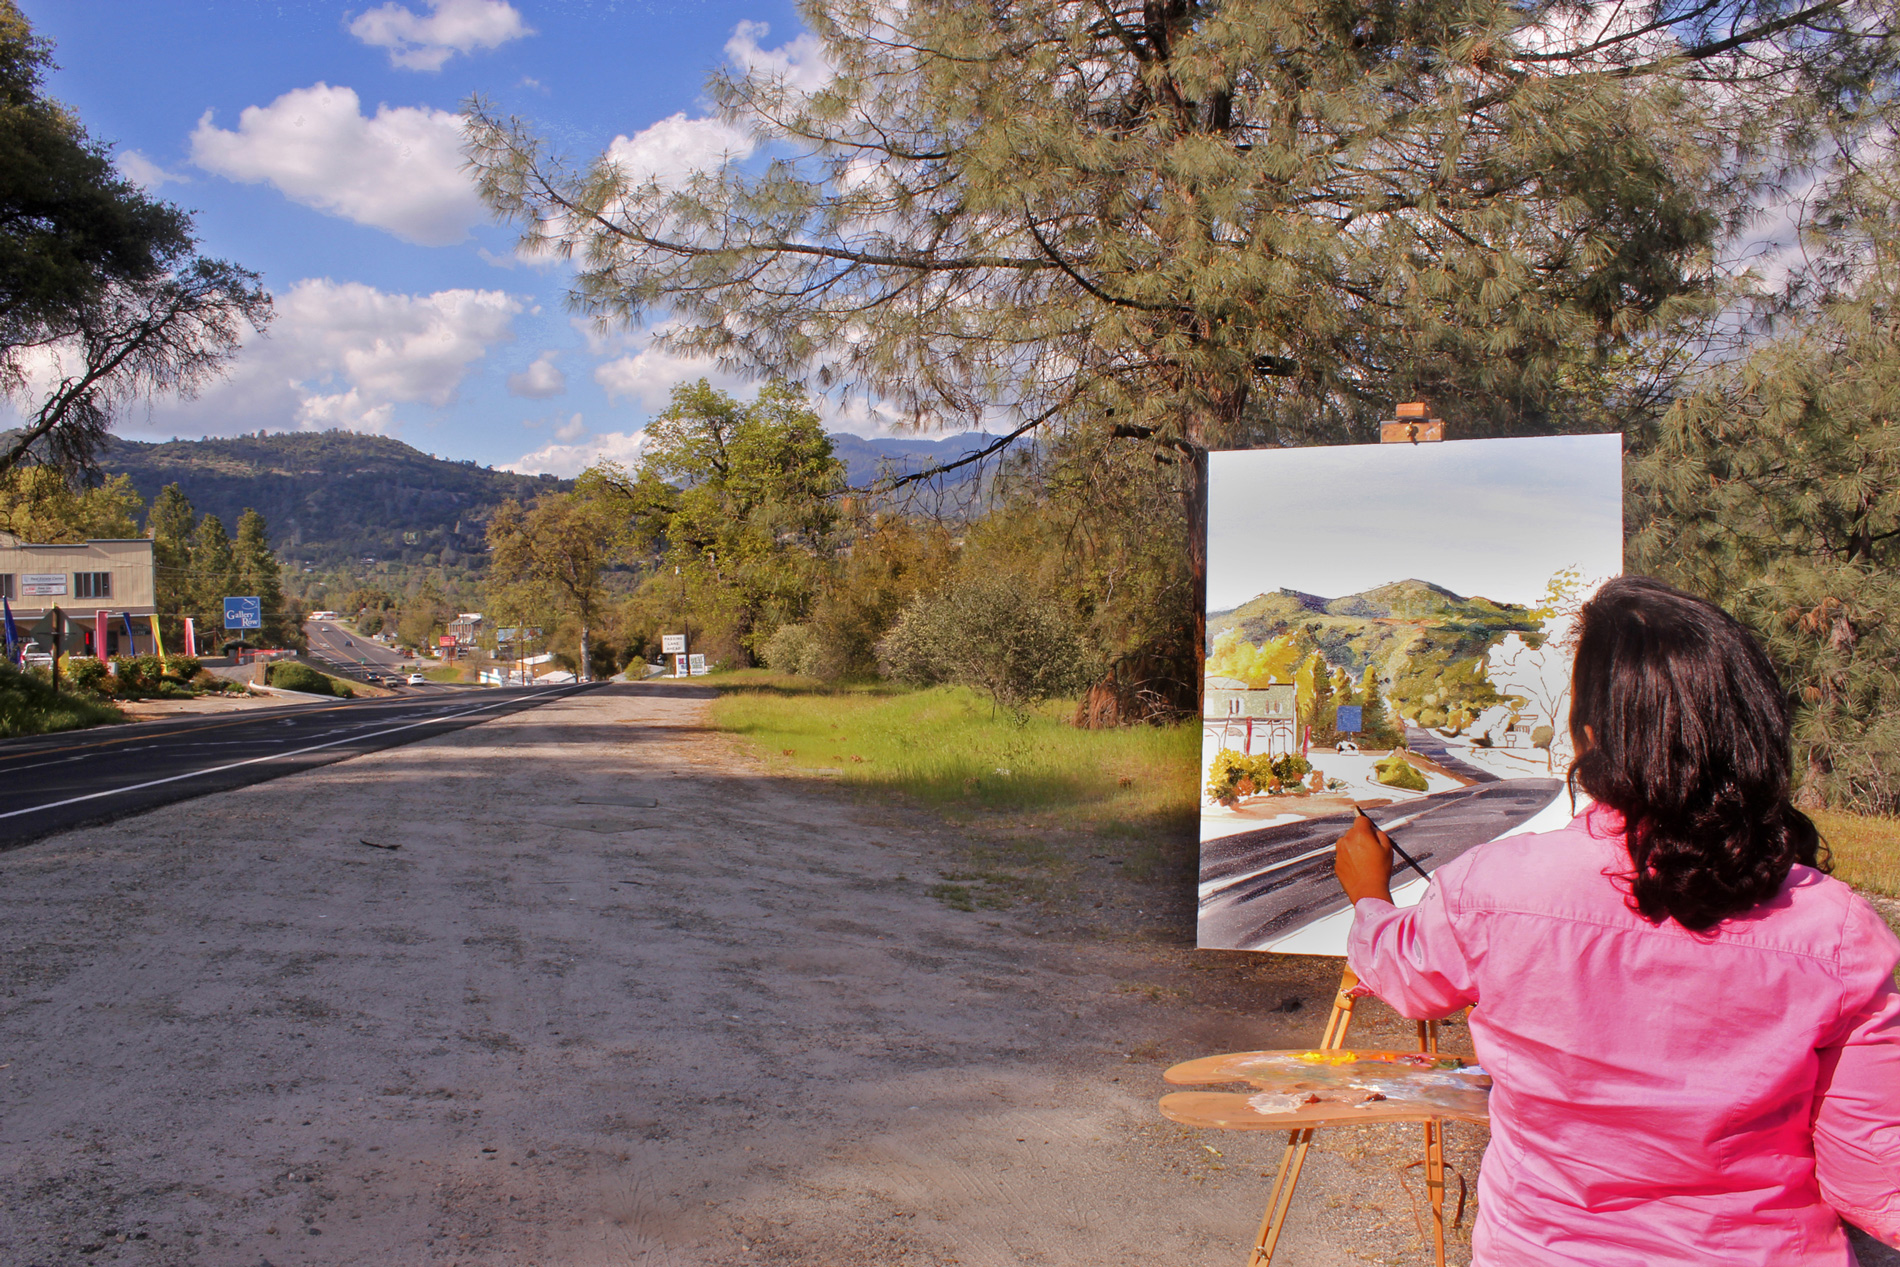 SIERRA ART TRAILS rITA ALVAREZ PAINTING IN OAKHURST, CA